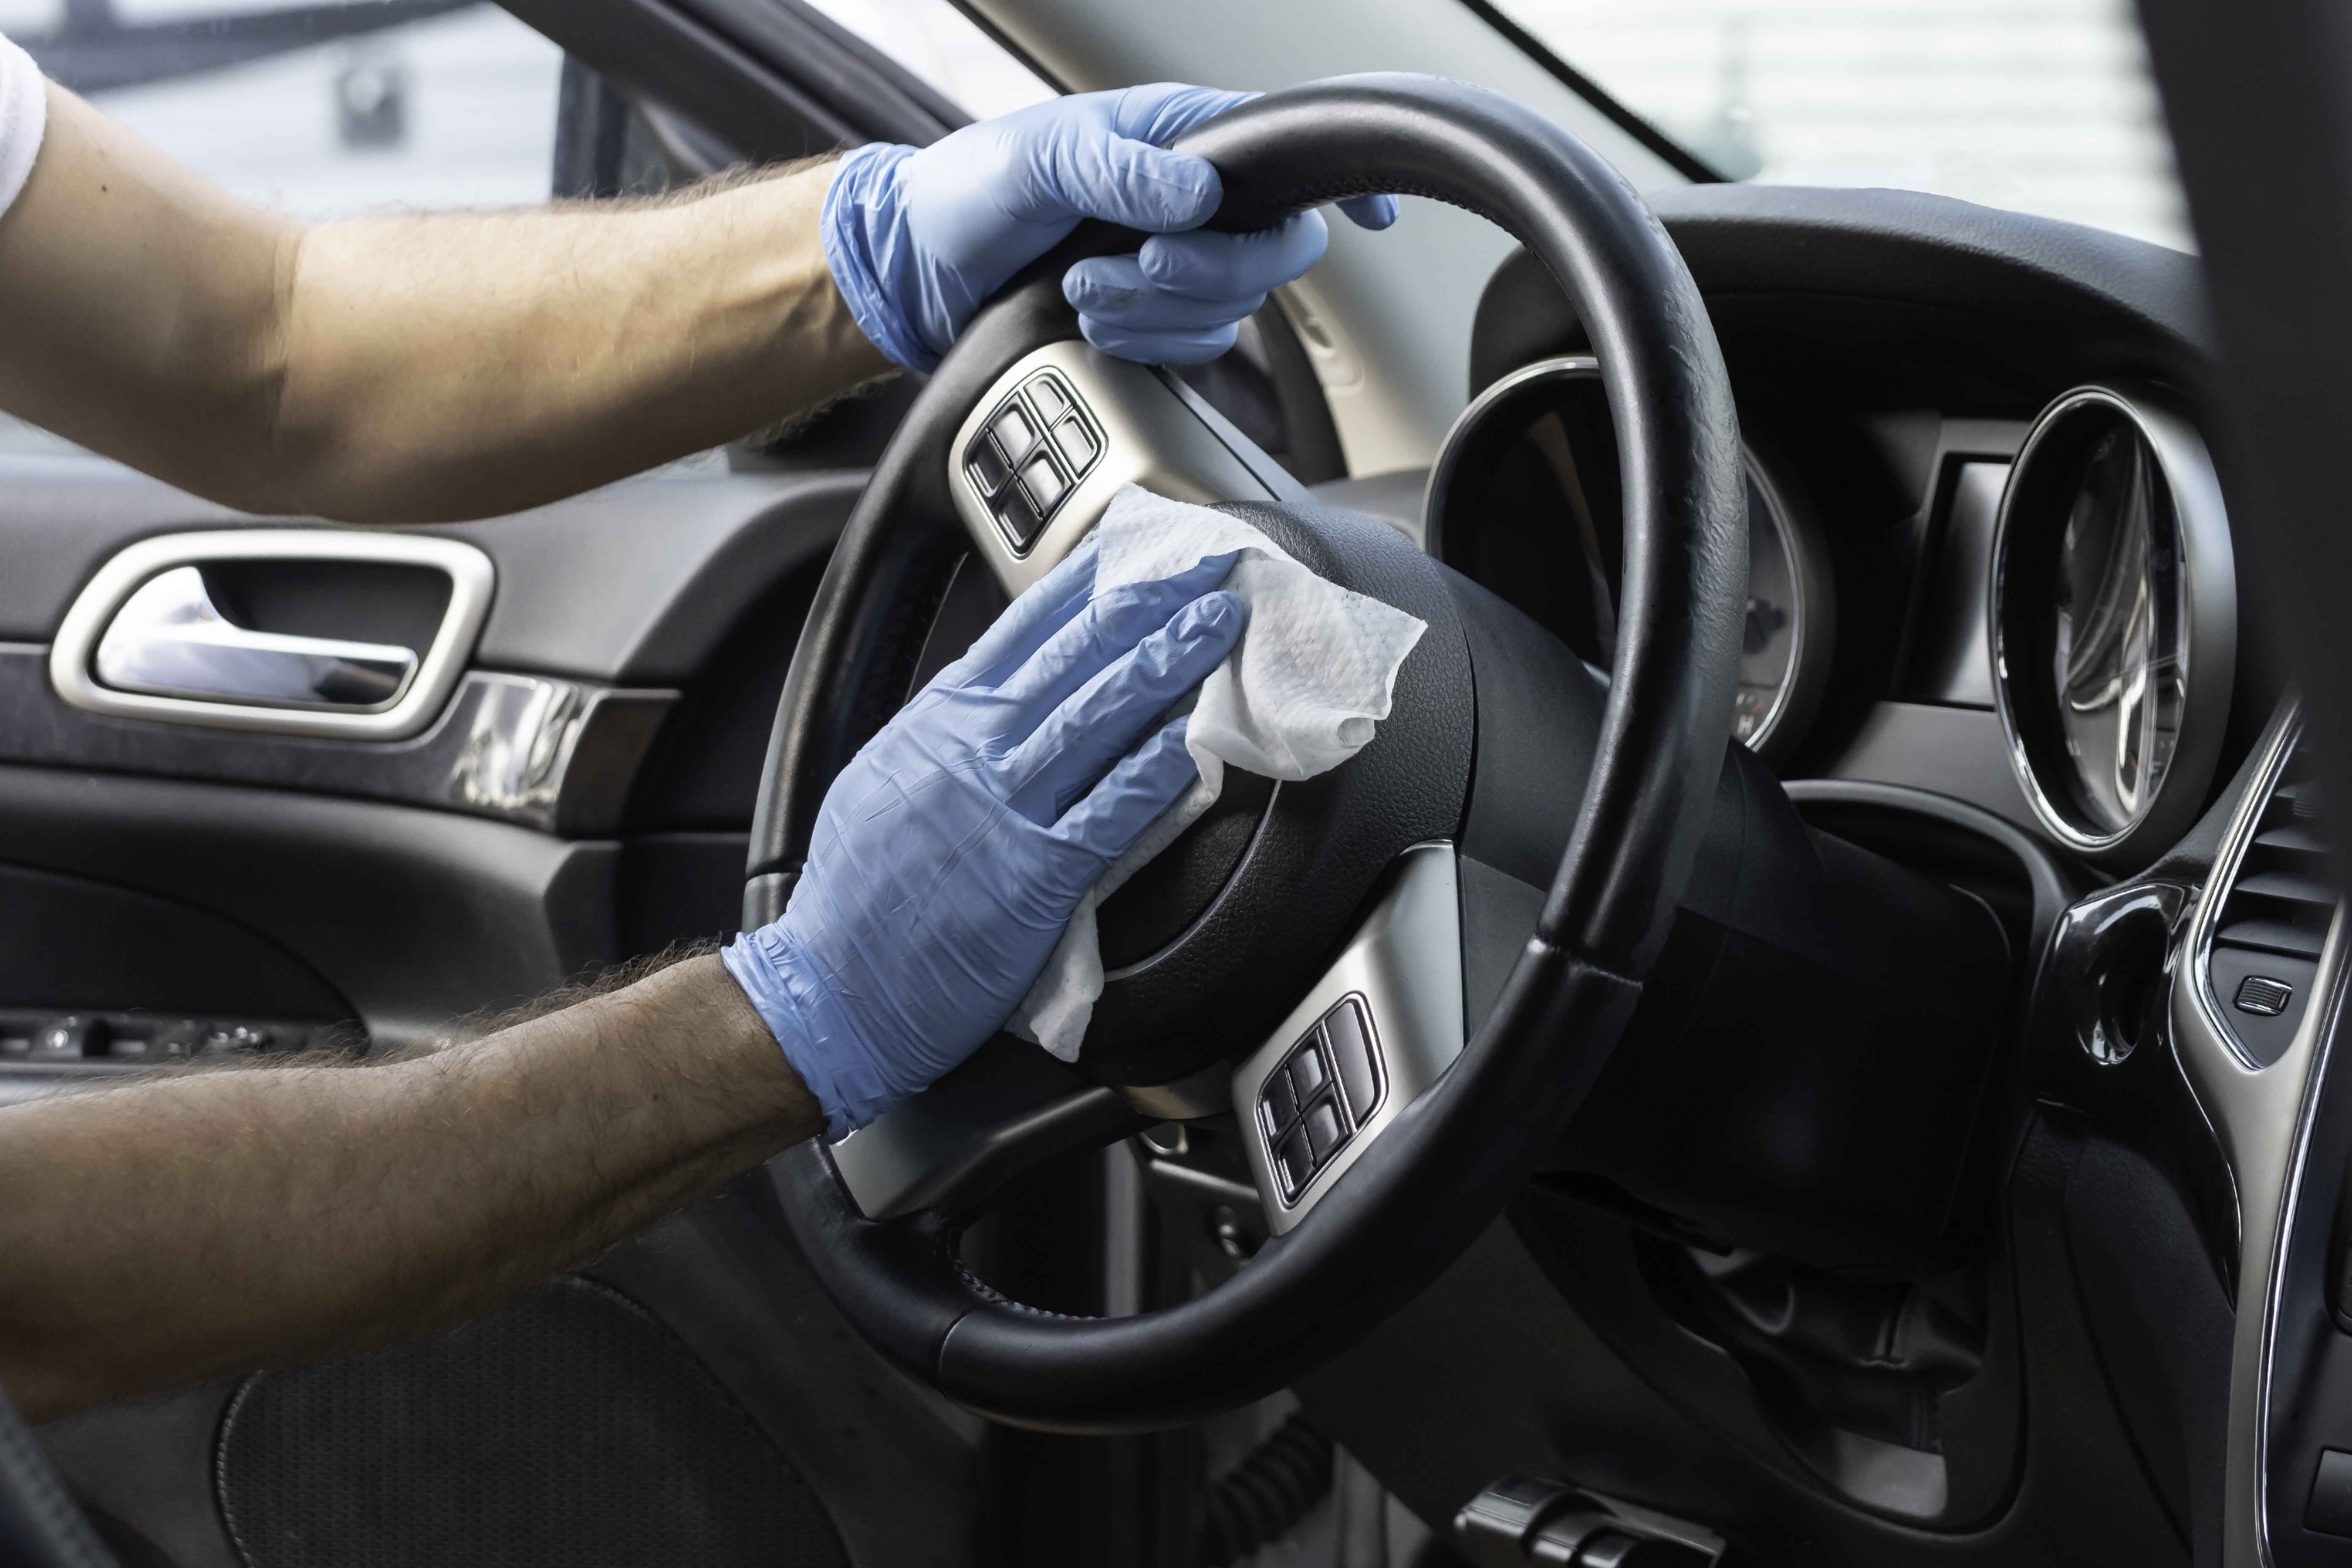 Vehicle cleaning and disinfection